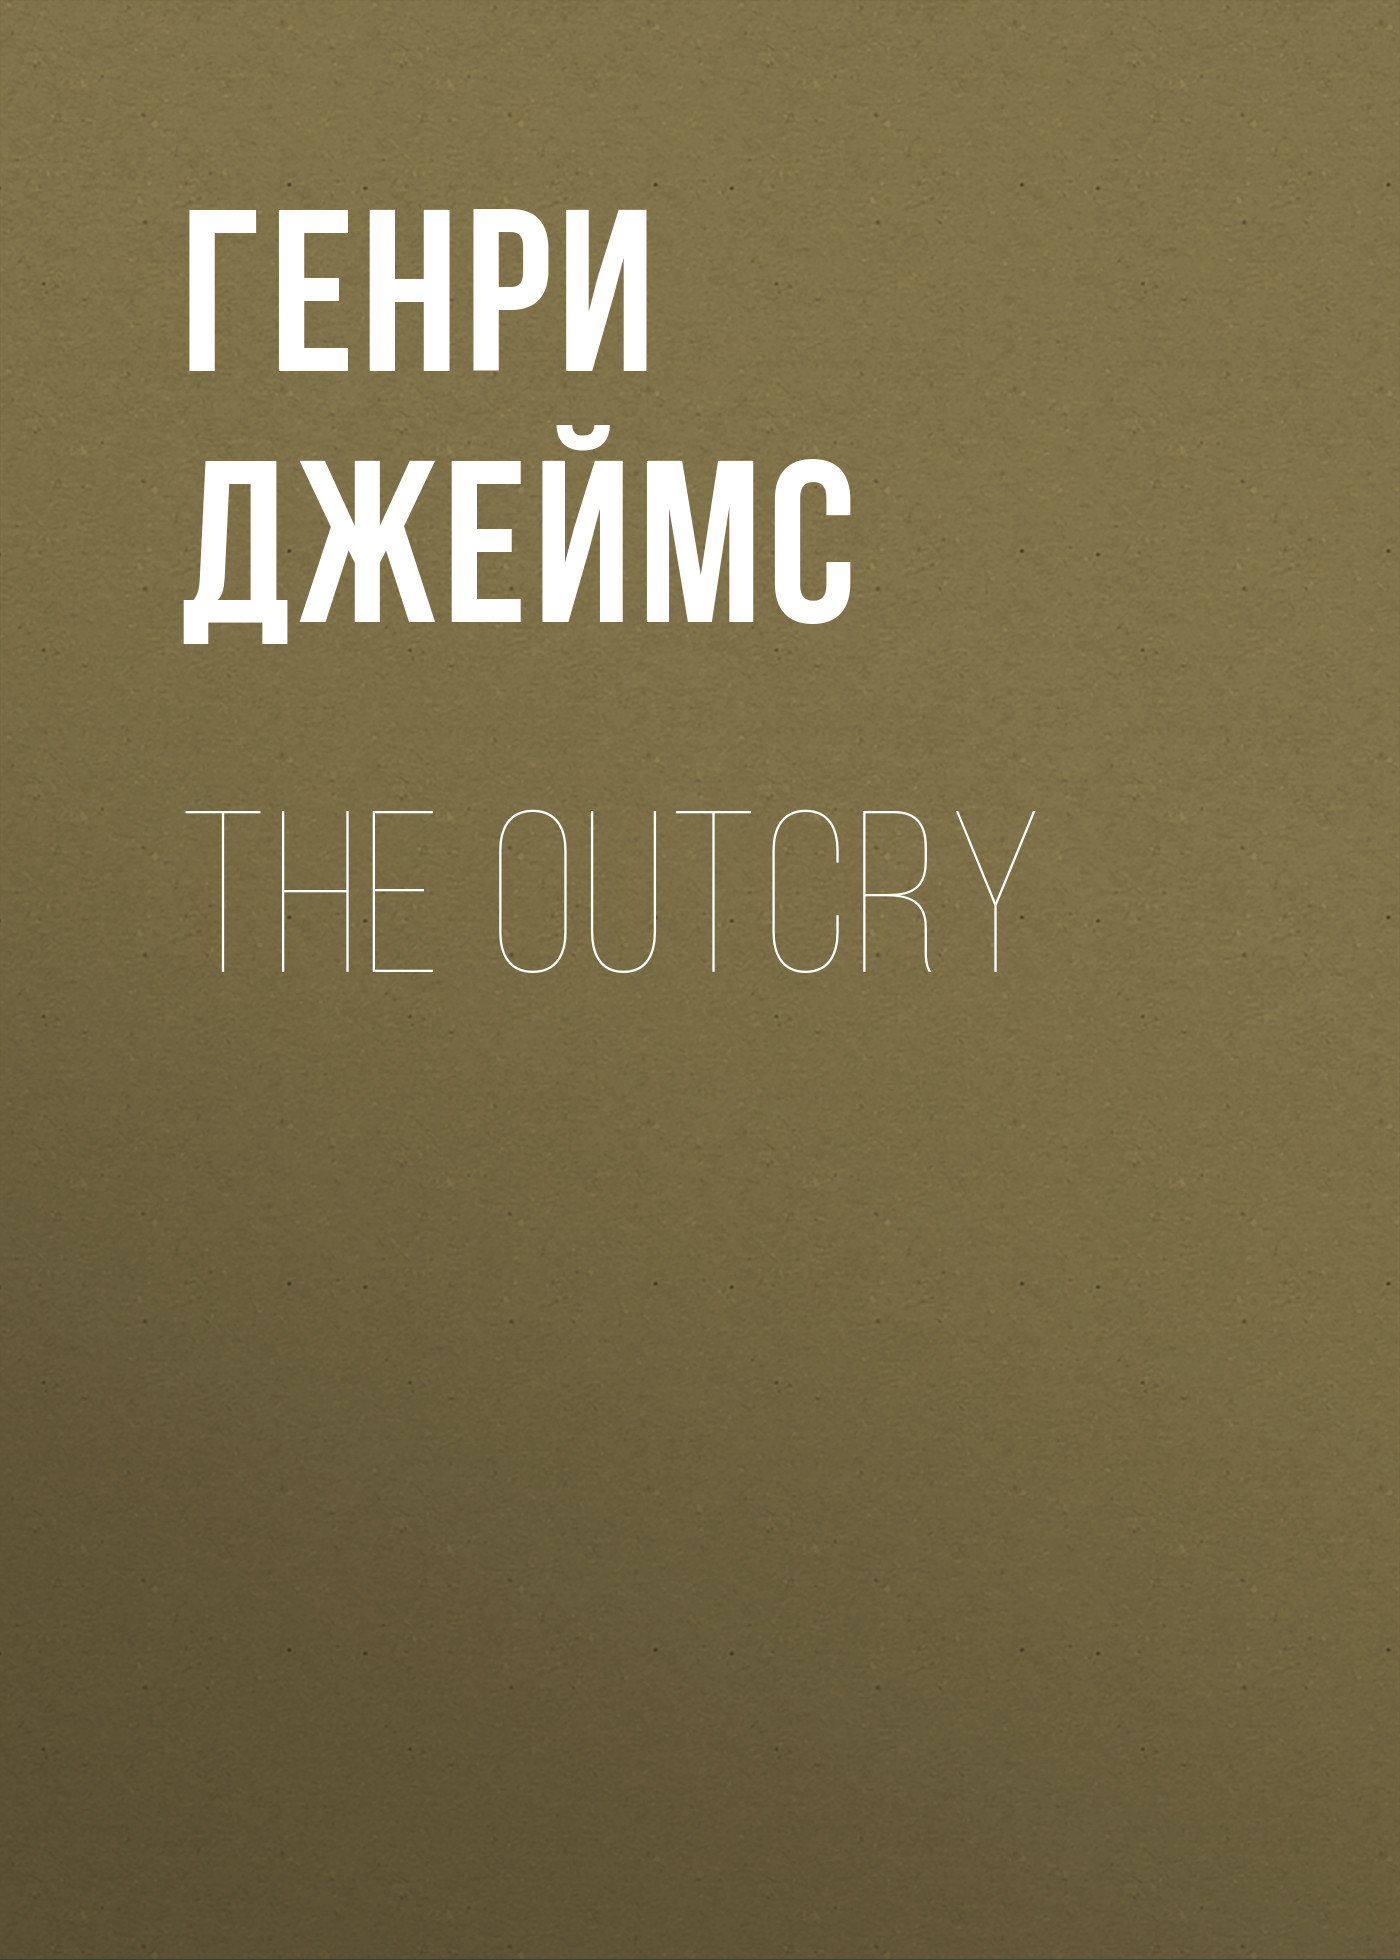 цена Генри Джеймс The Outcry онлайн в 2017 году